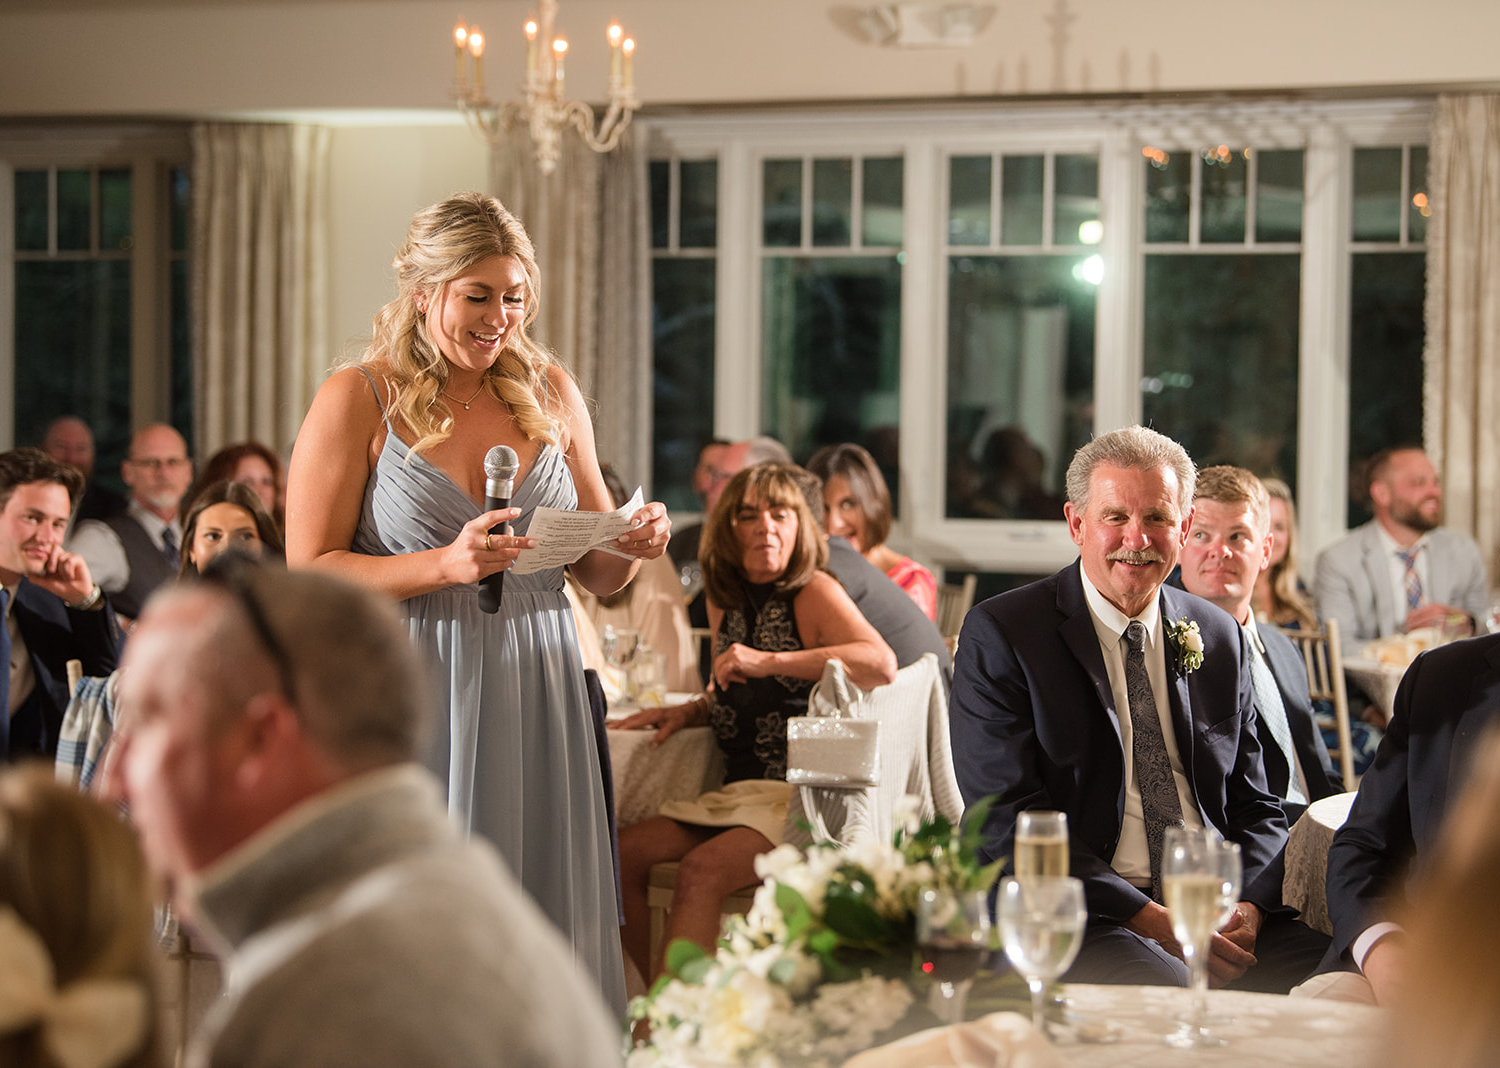 bridesmaid delivering her bridesmaid speech for the bride and groom